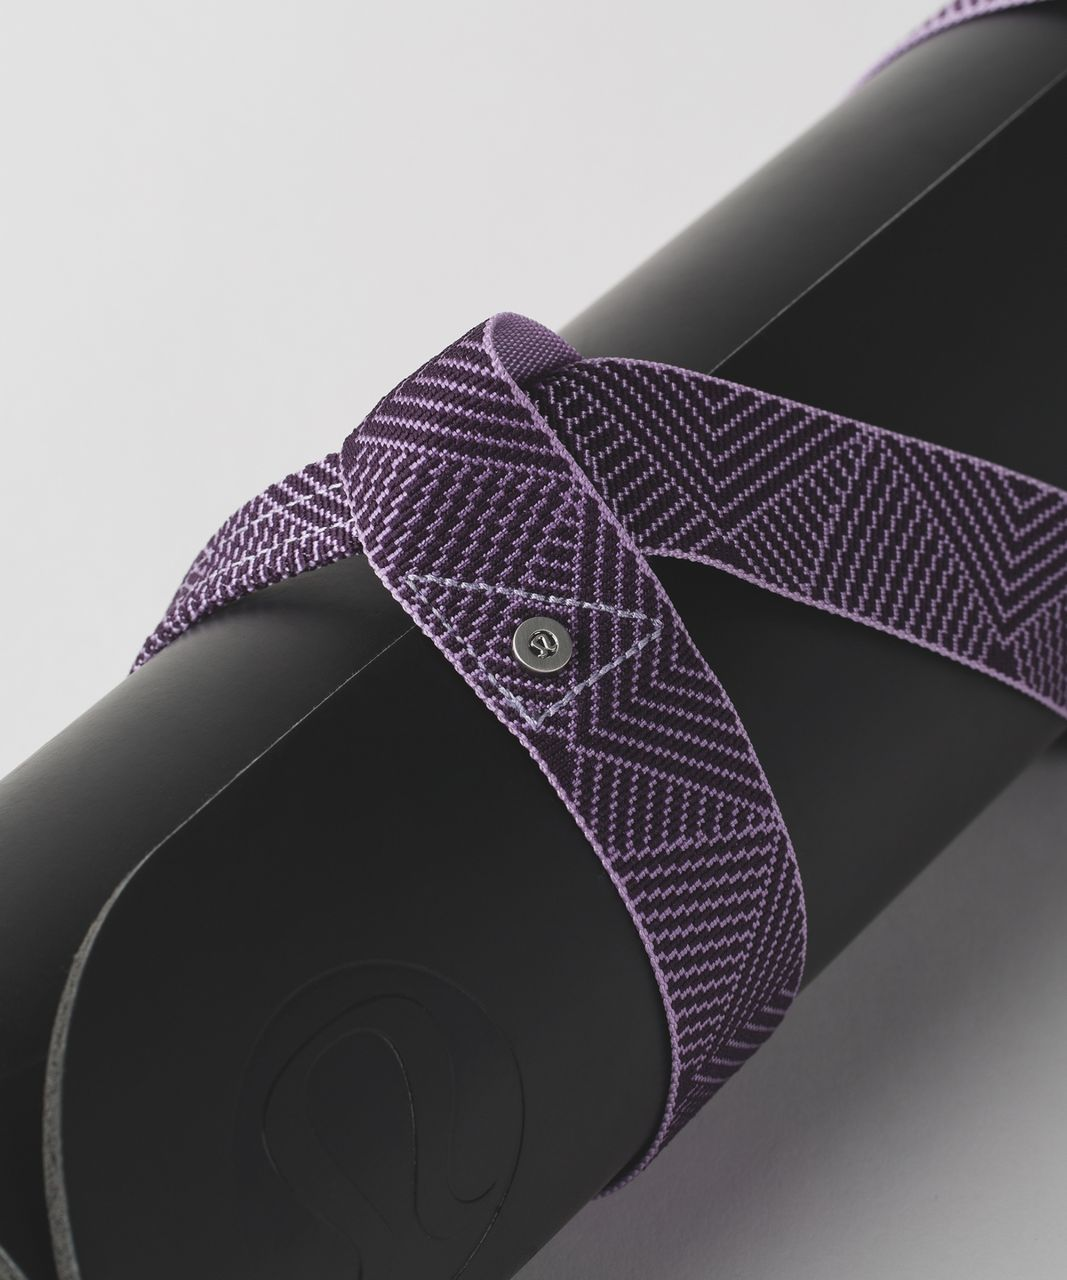 Lululemon Loop It Up Mat Strap - Lilac / Deep Zinfandel